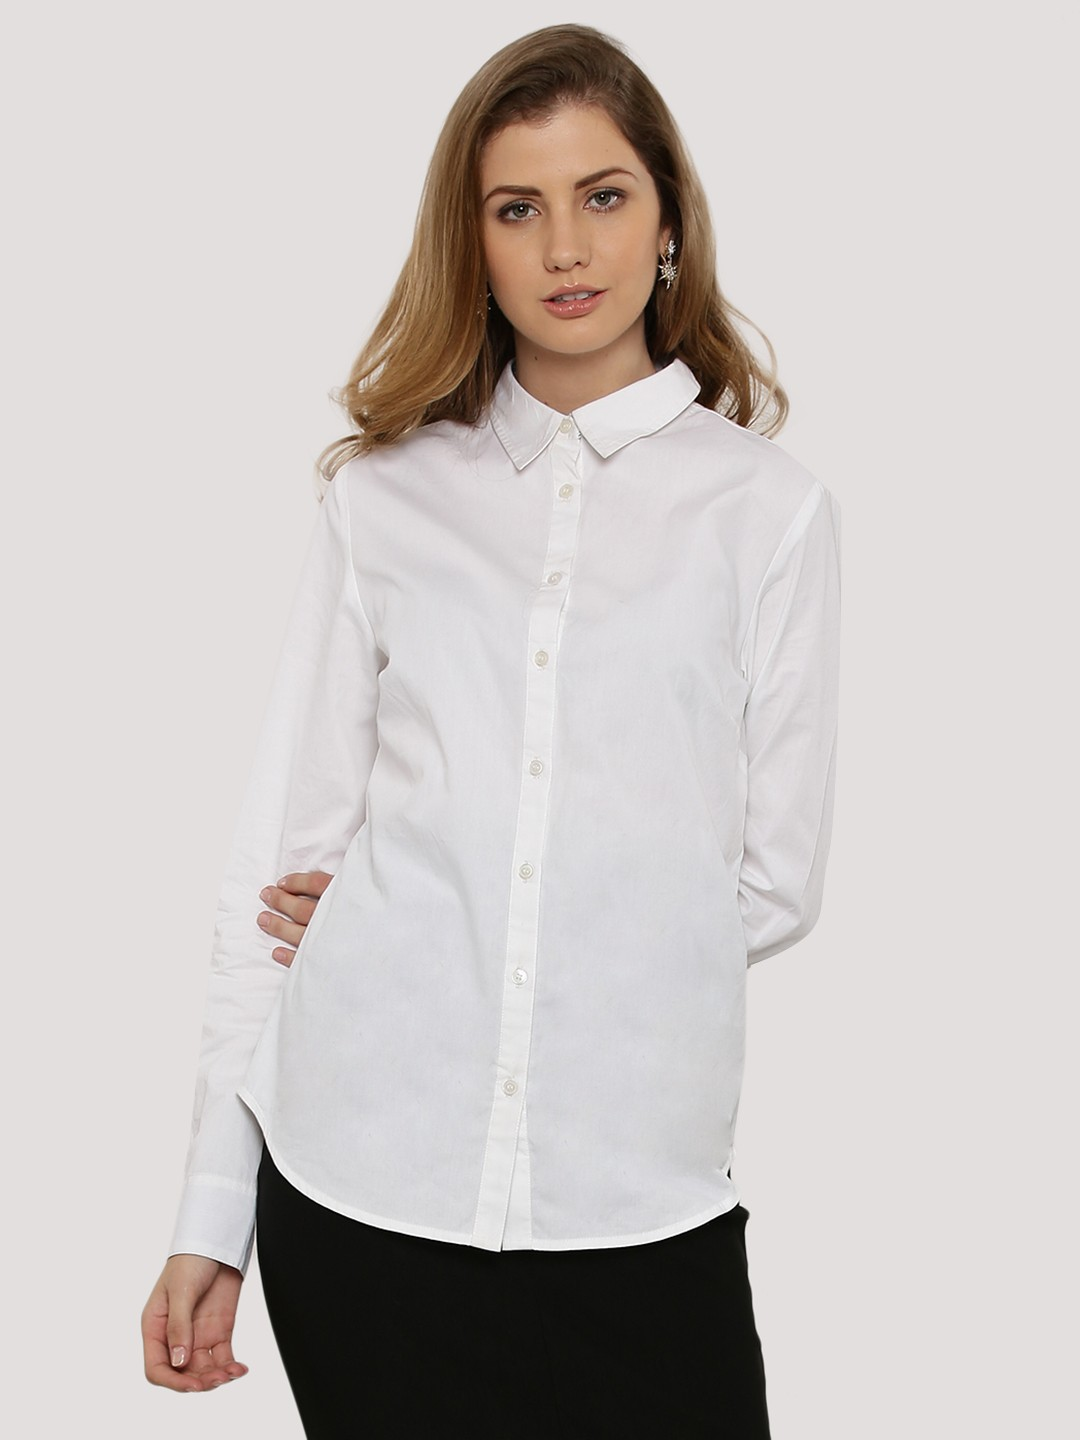 buy tailored fitted shirt for women women 39 s white shirts